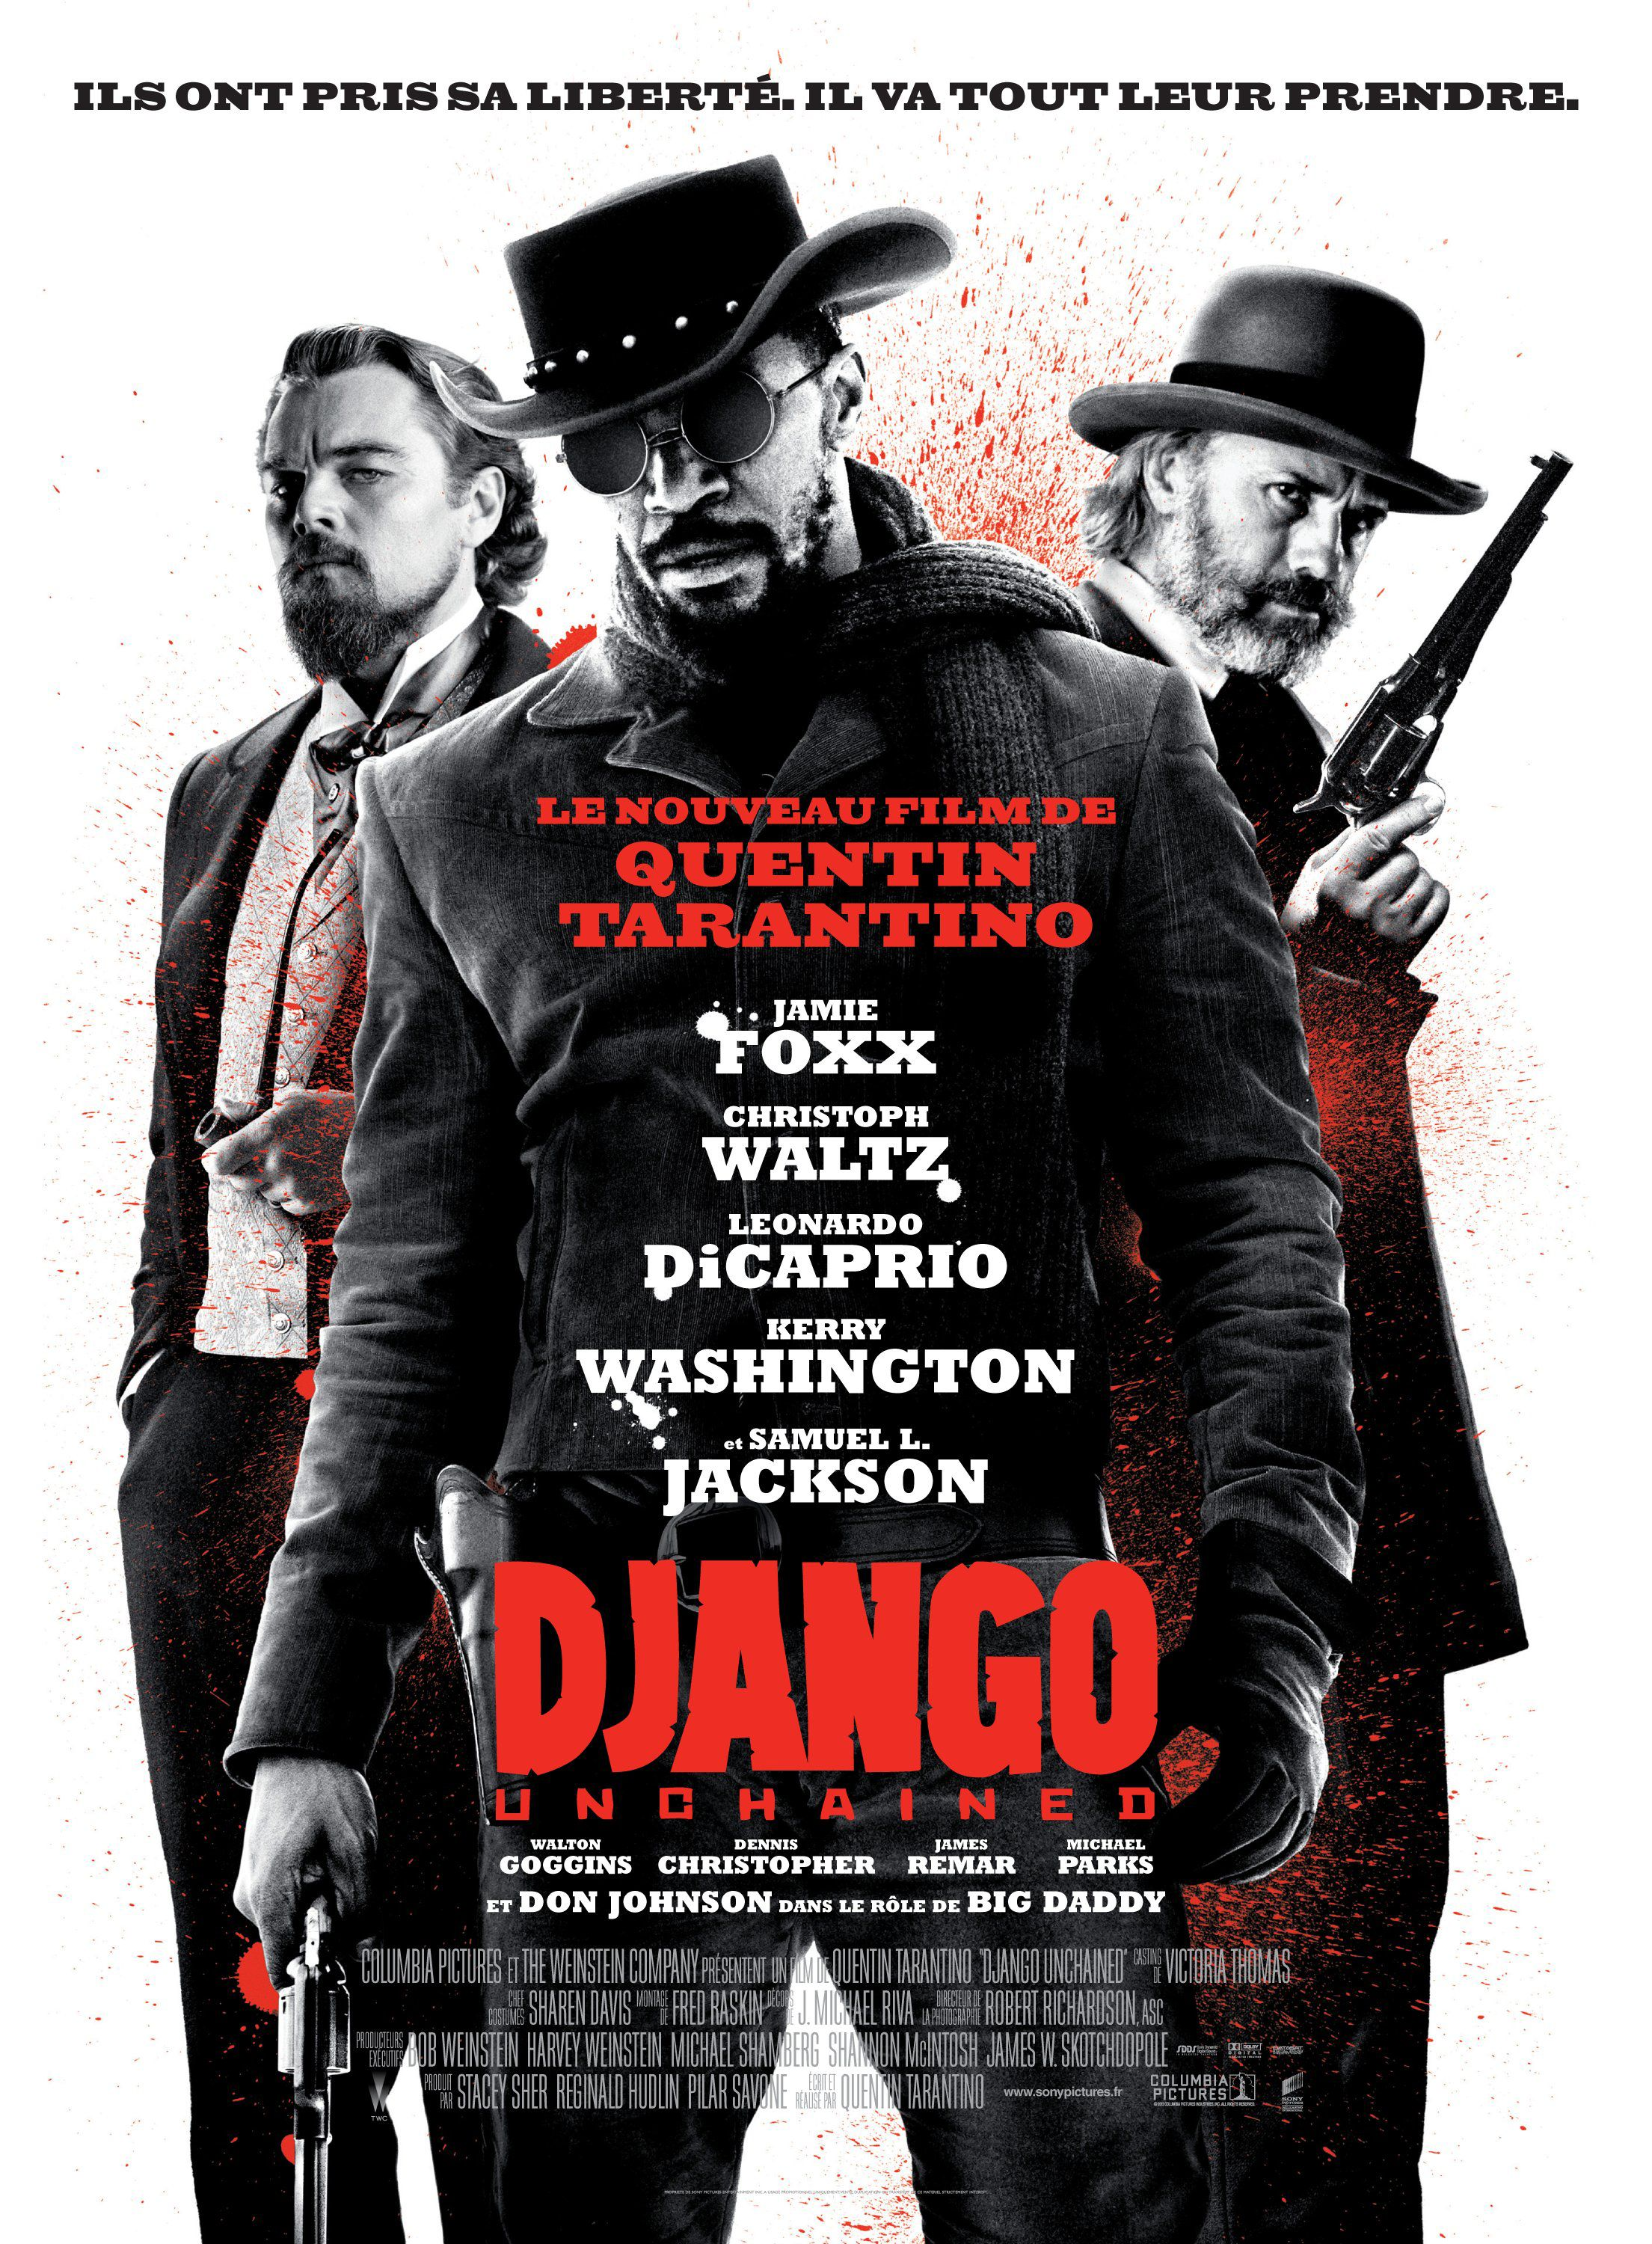 Django Unchained - Film (2012) streaming VF gratuit complet